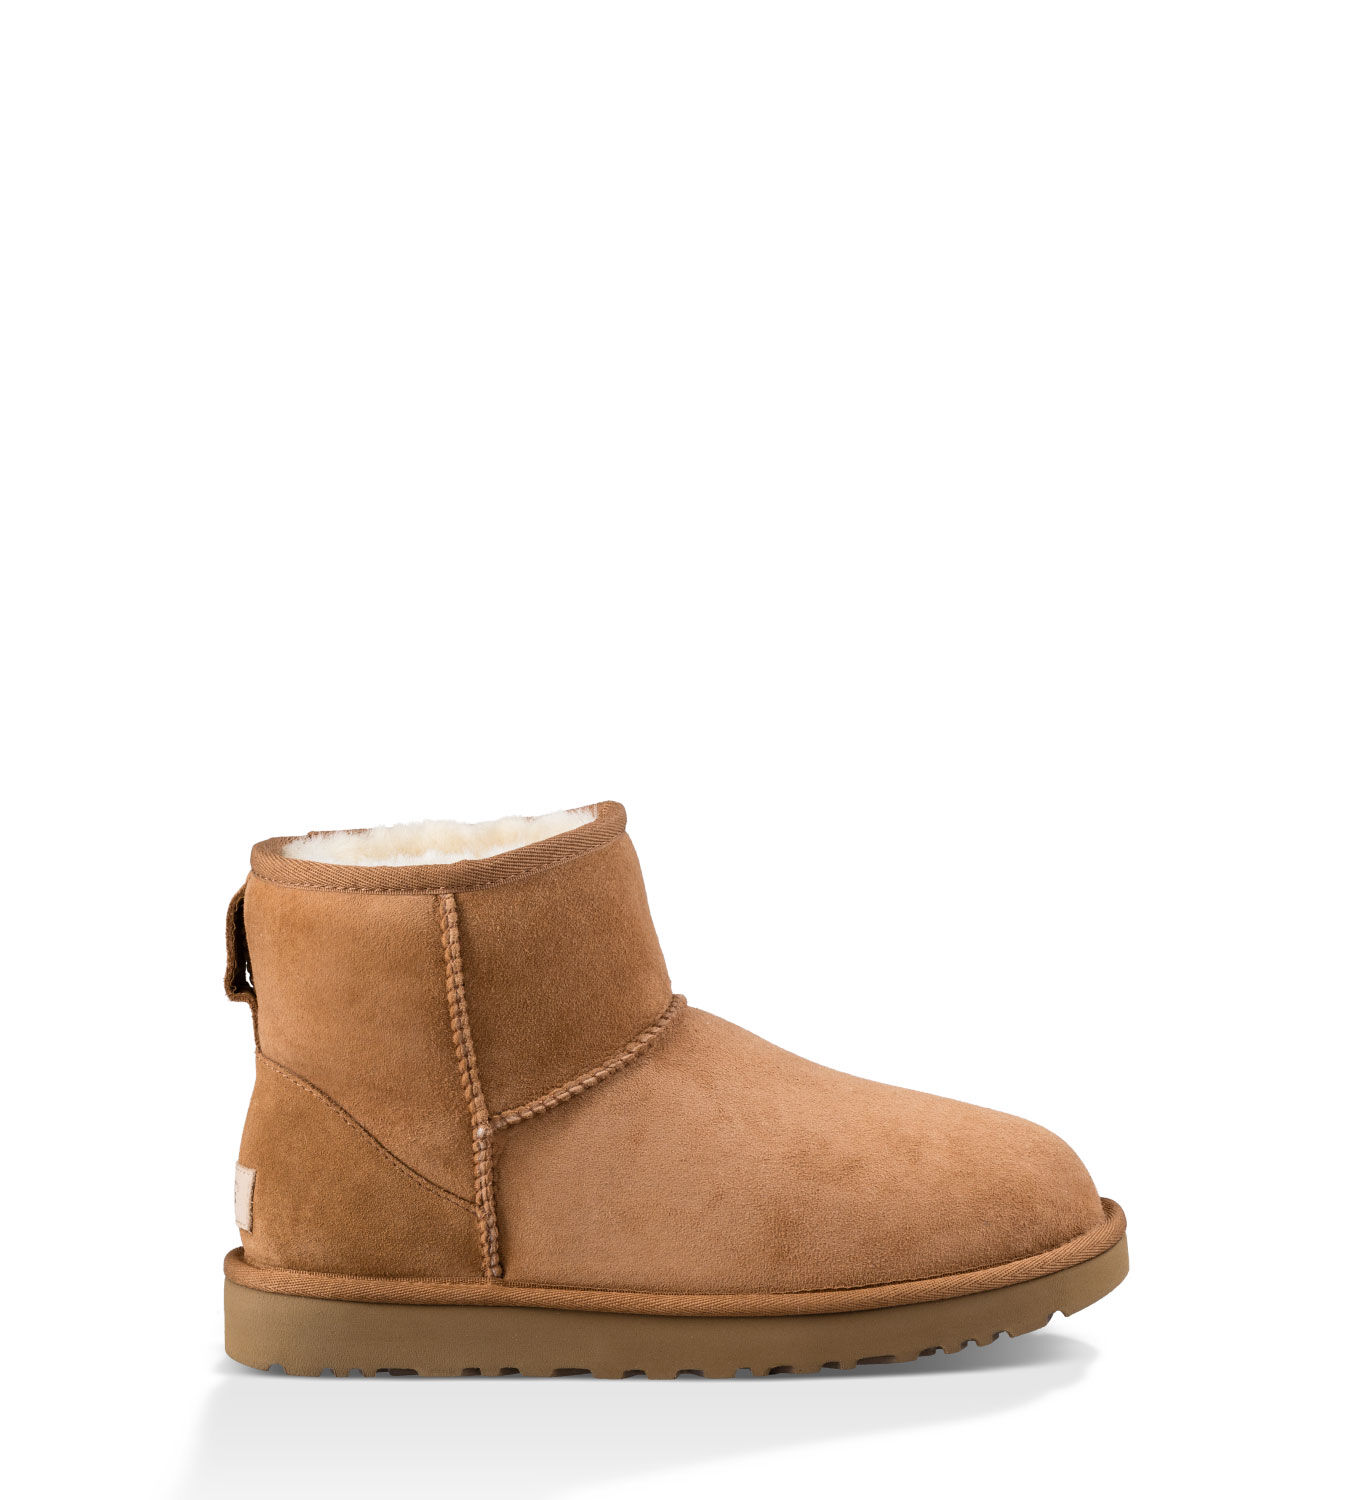 Ladies long ugg boots